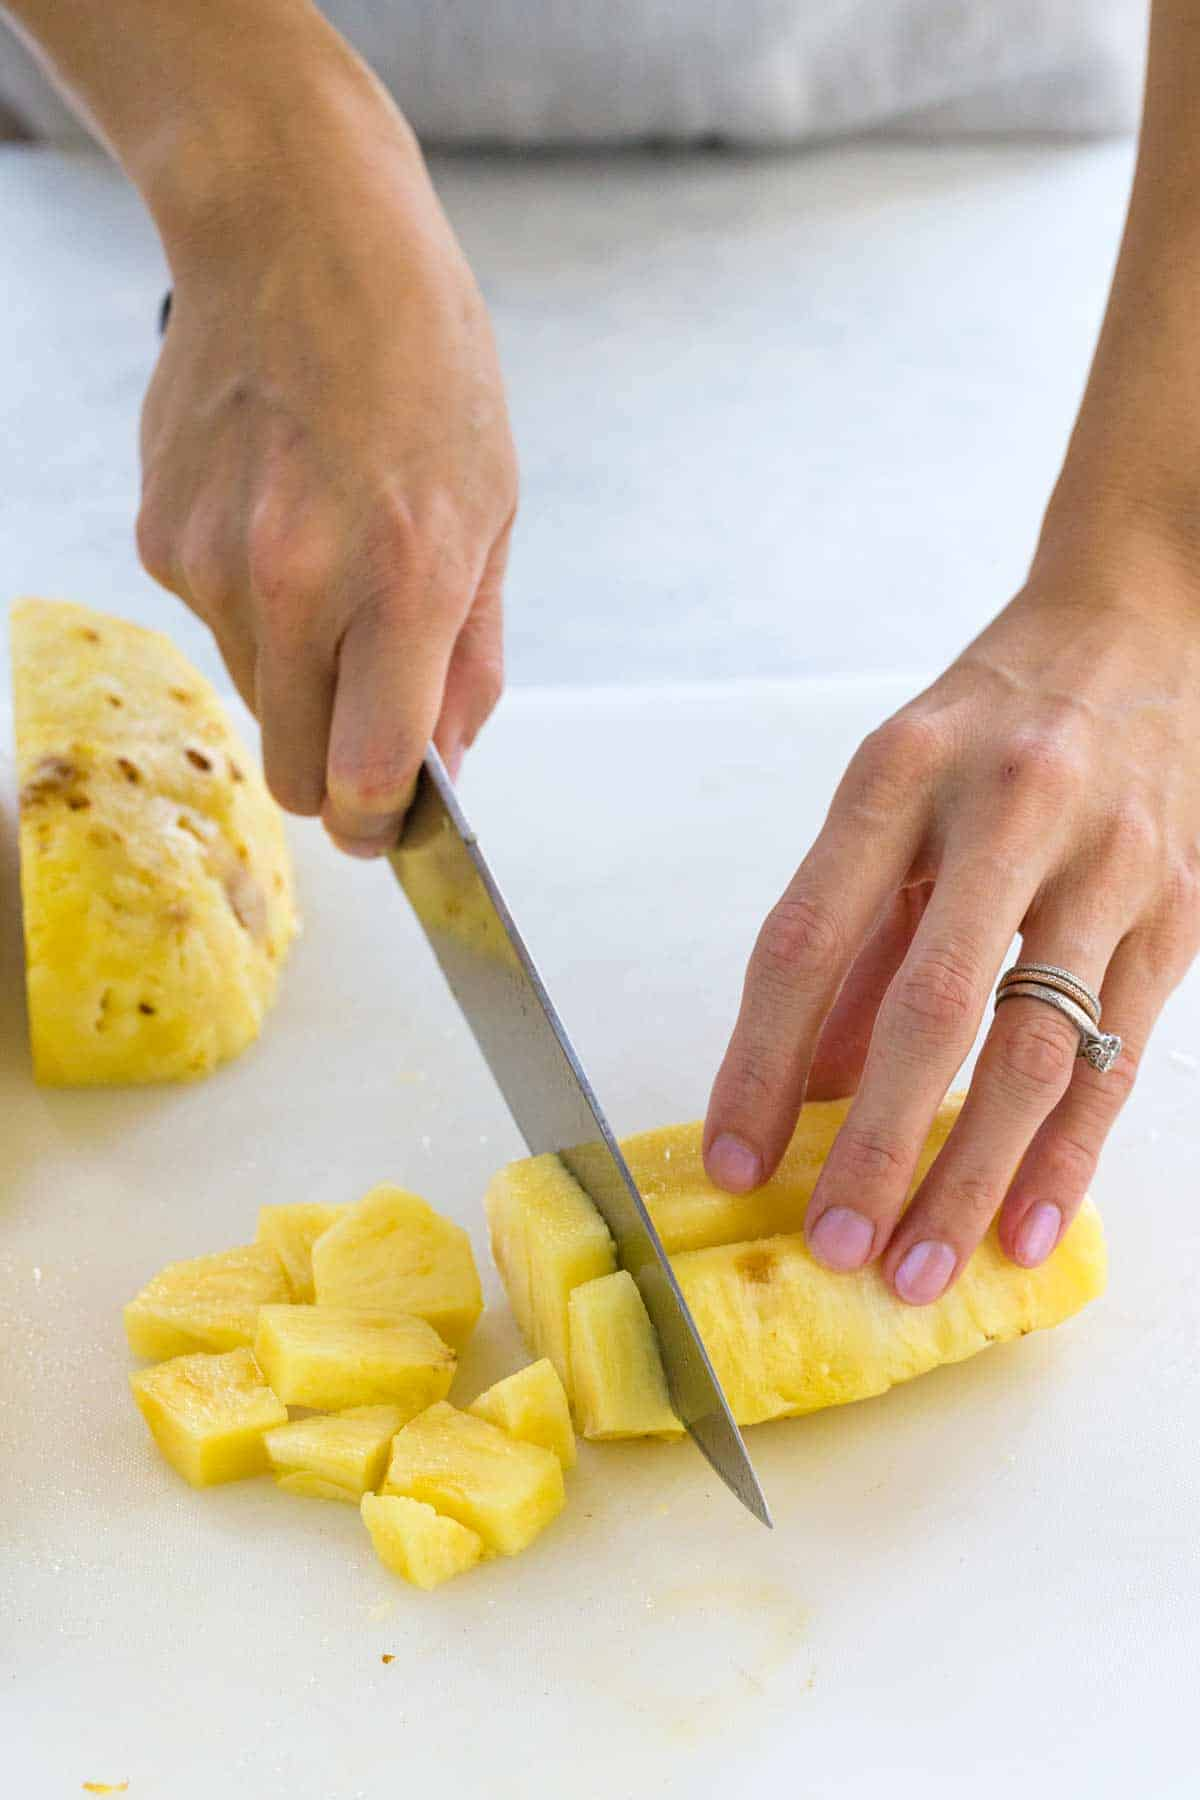 Person using a knife to cut pineapple into small chunks